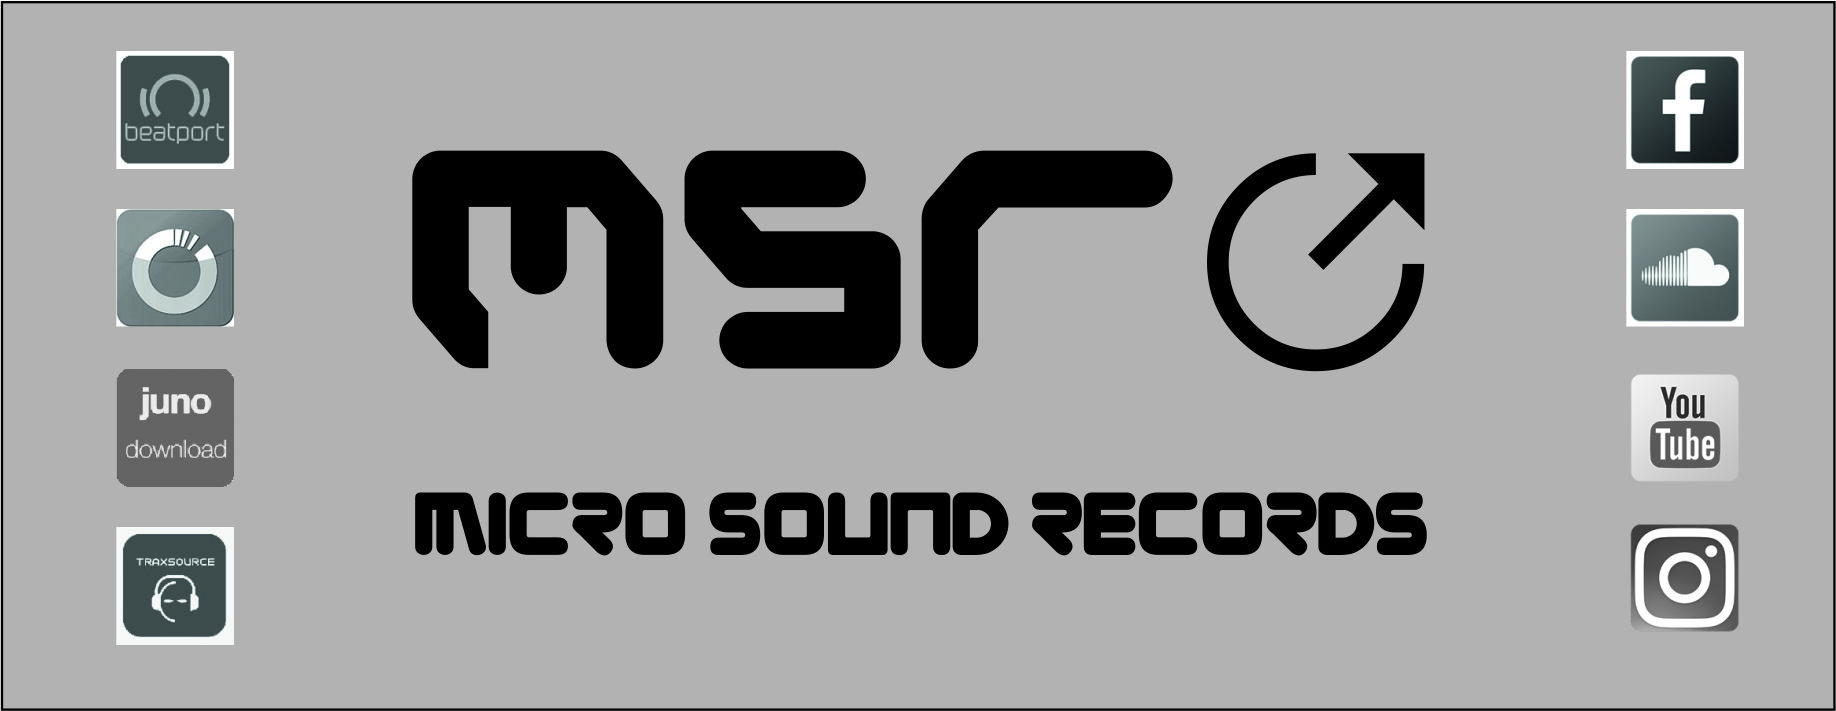 Micro Sound Records